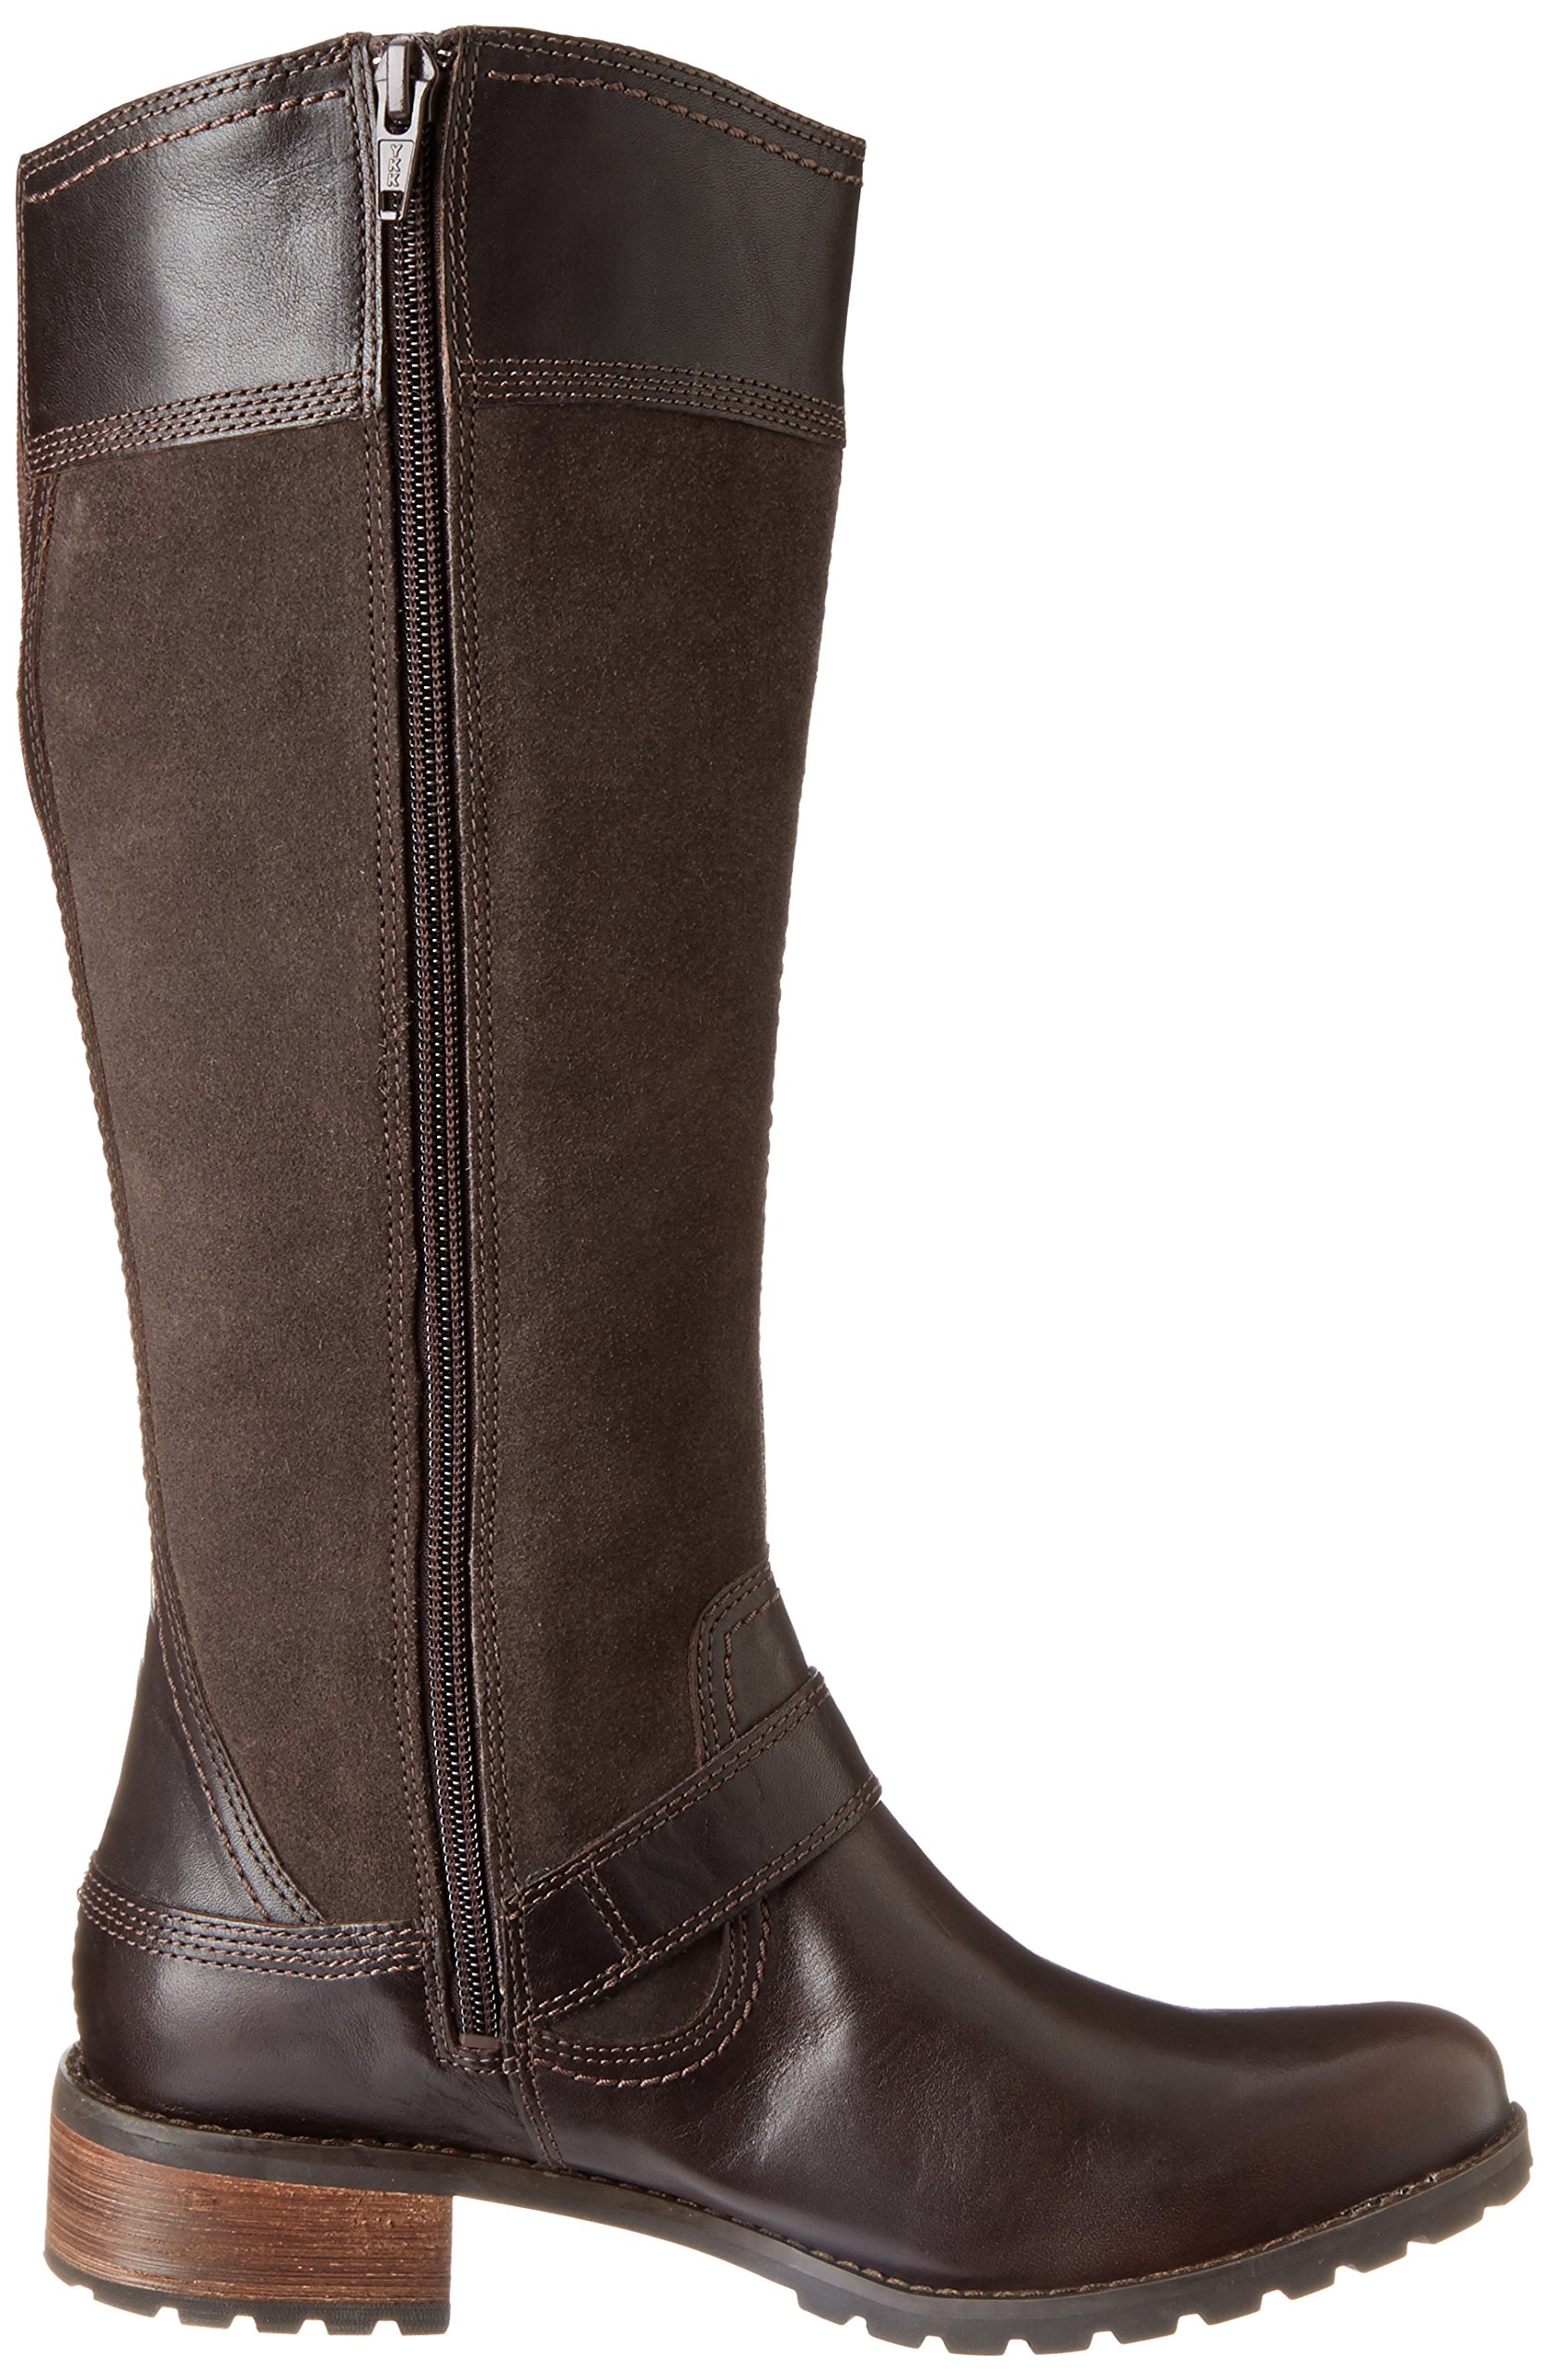 Timberland Women's EK Bethel Tall Harness Boot,Brown,6 W US by Timberland (Image #7)